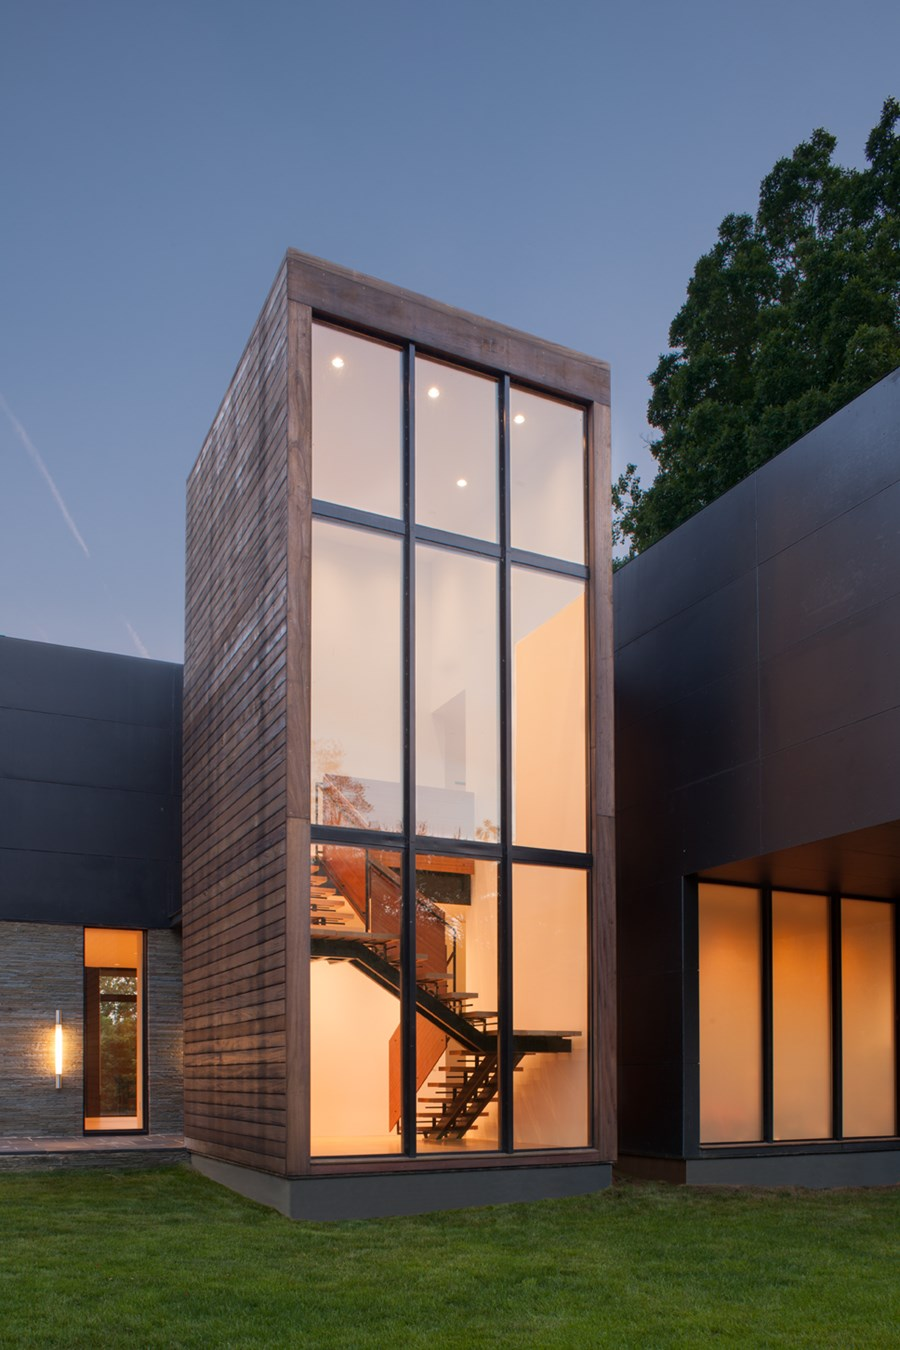 Riggins house by Robert M. Gurney, FAIA  Architect 03